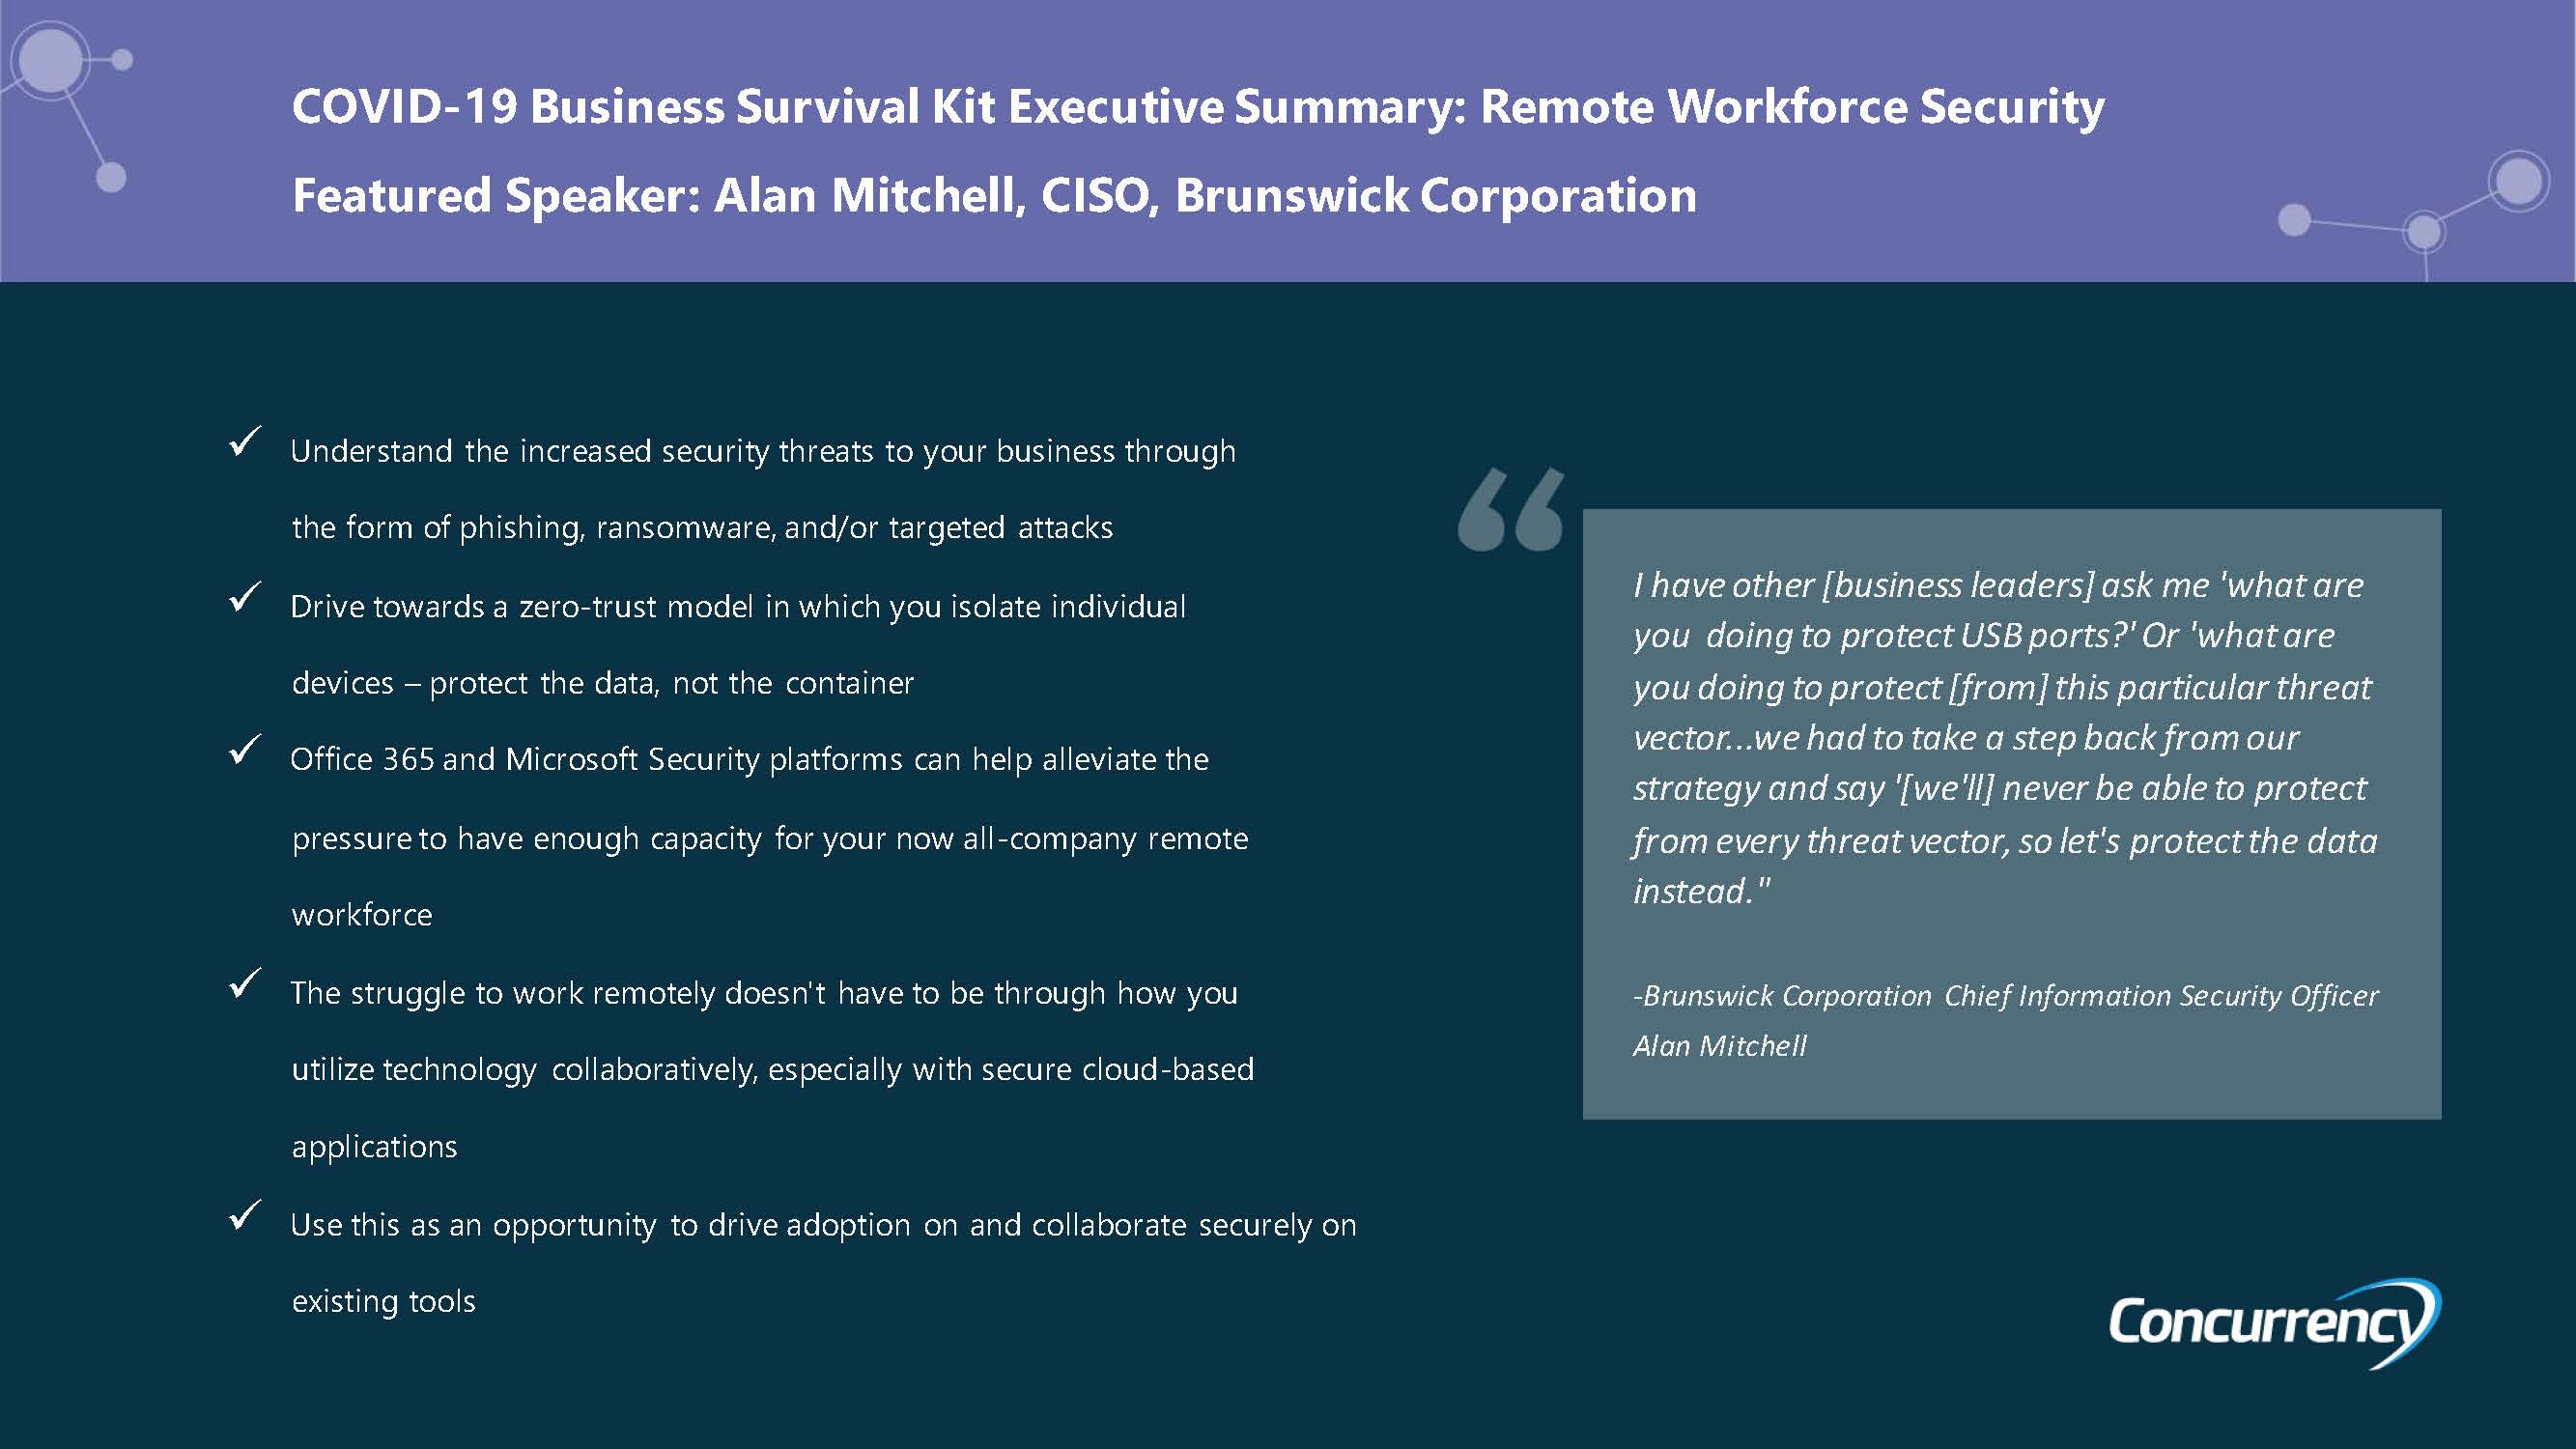 COVID19_BusinessSurvival_ExecutiveSummary_Security.jpg